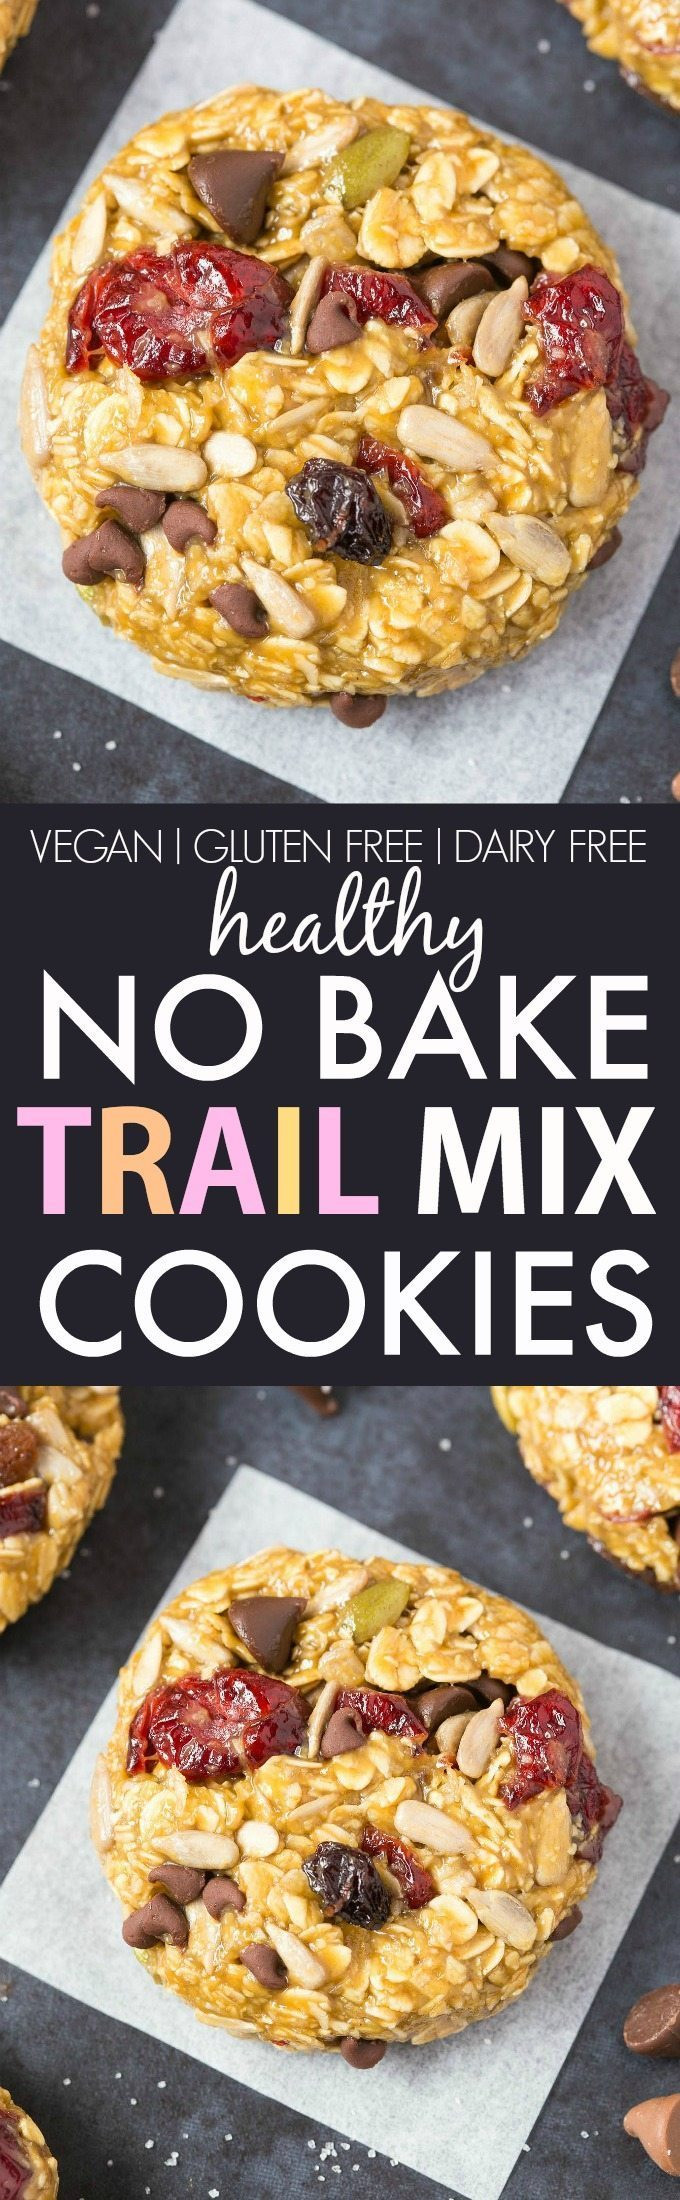 Gluten Free Dairy Free No Bake Cookies  Healthy No Bake Trail Mix Cookies Vegan Gluten Free